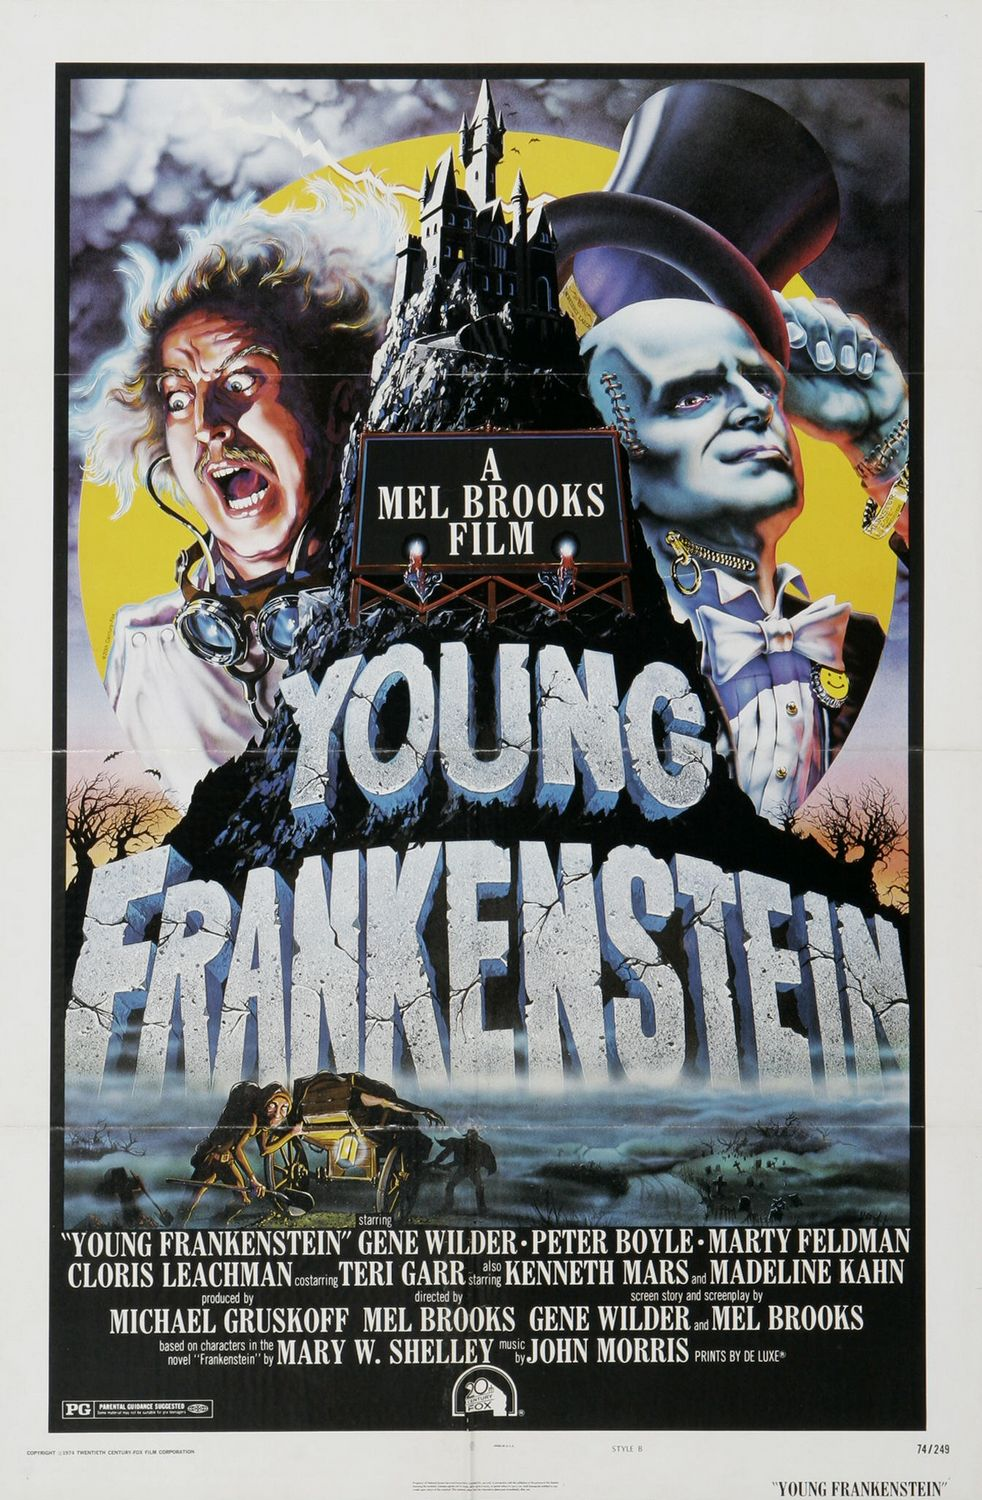 Young Frankenstein - Mel Brooks - Gene Wilder - Marty Feldman - film poster